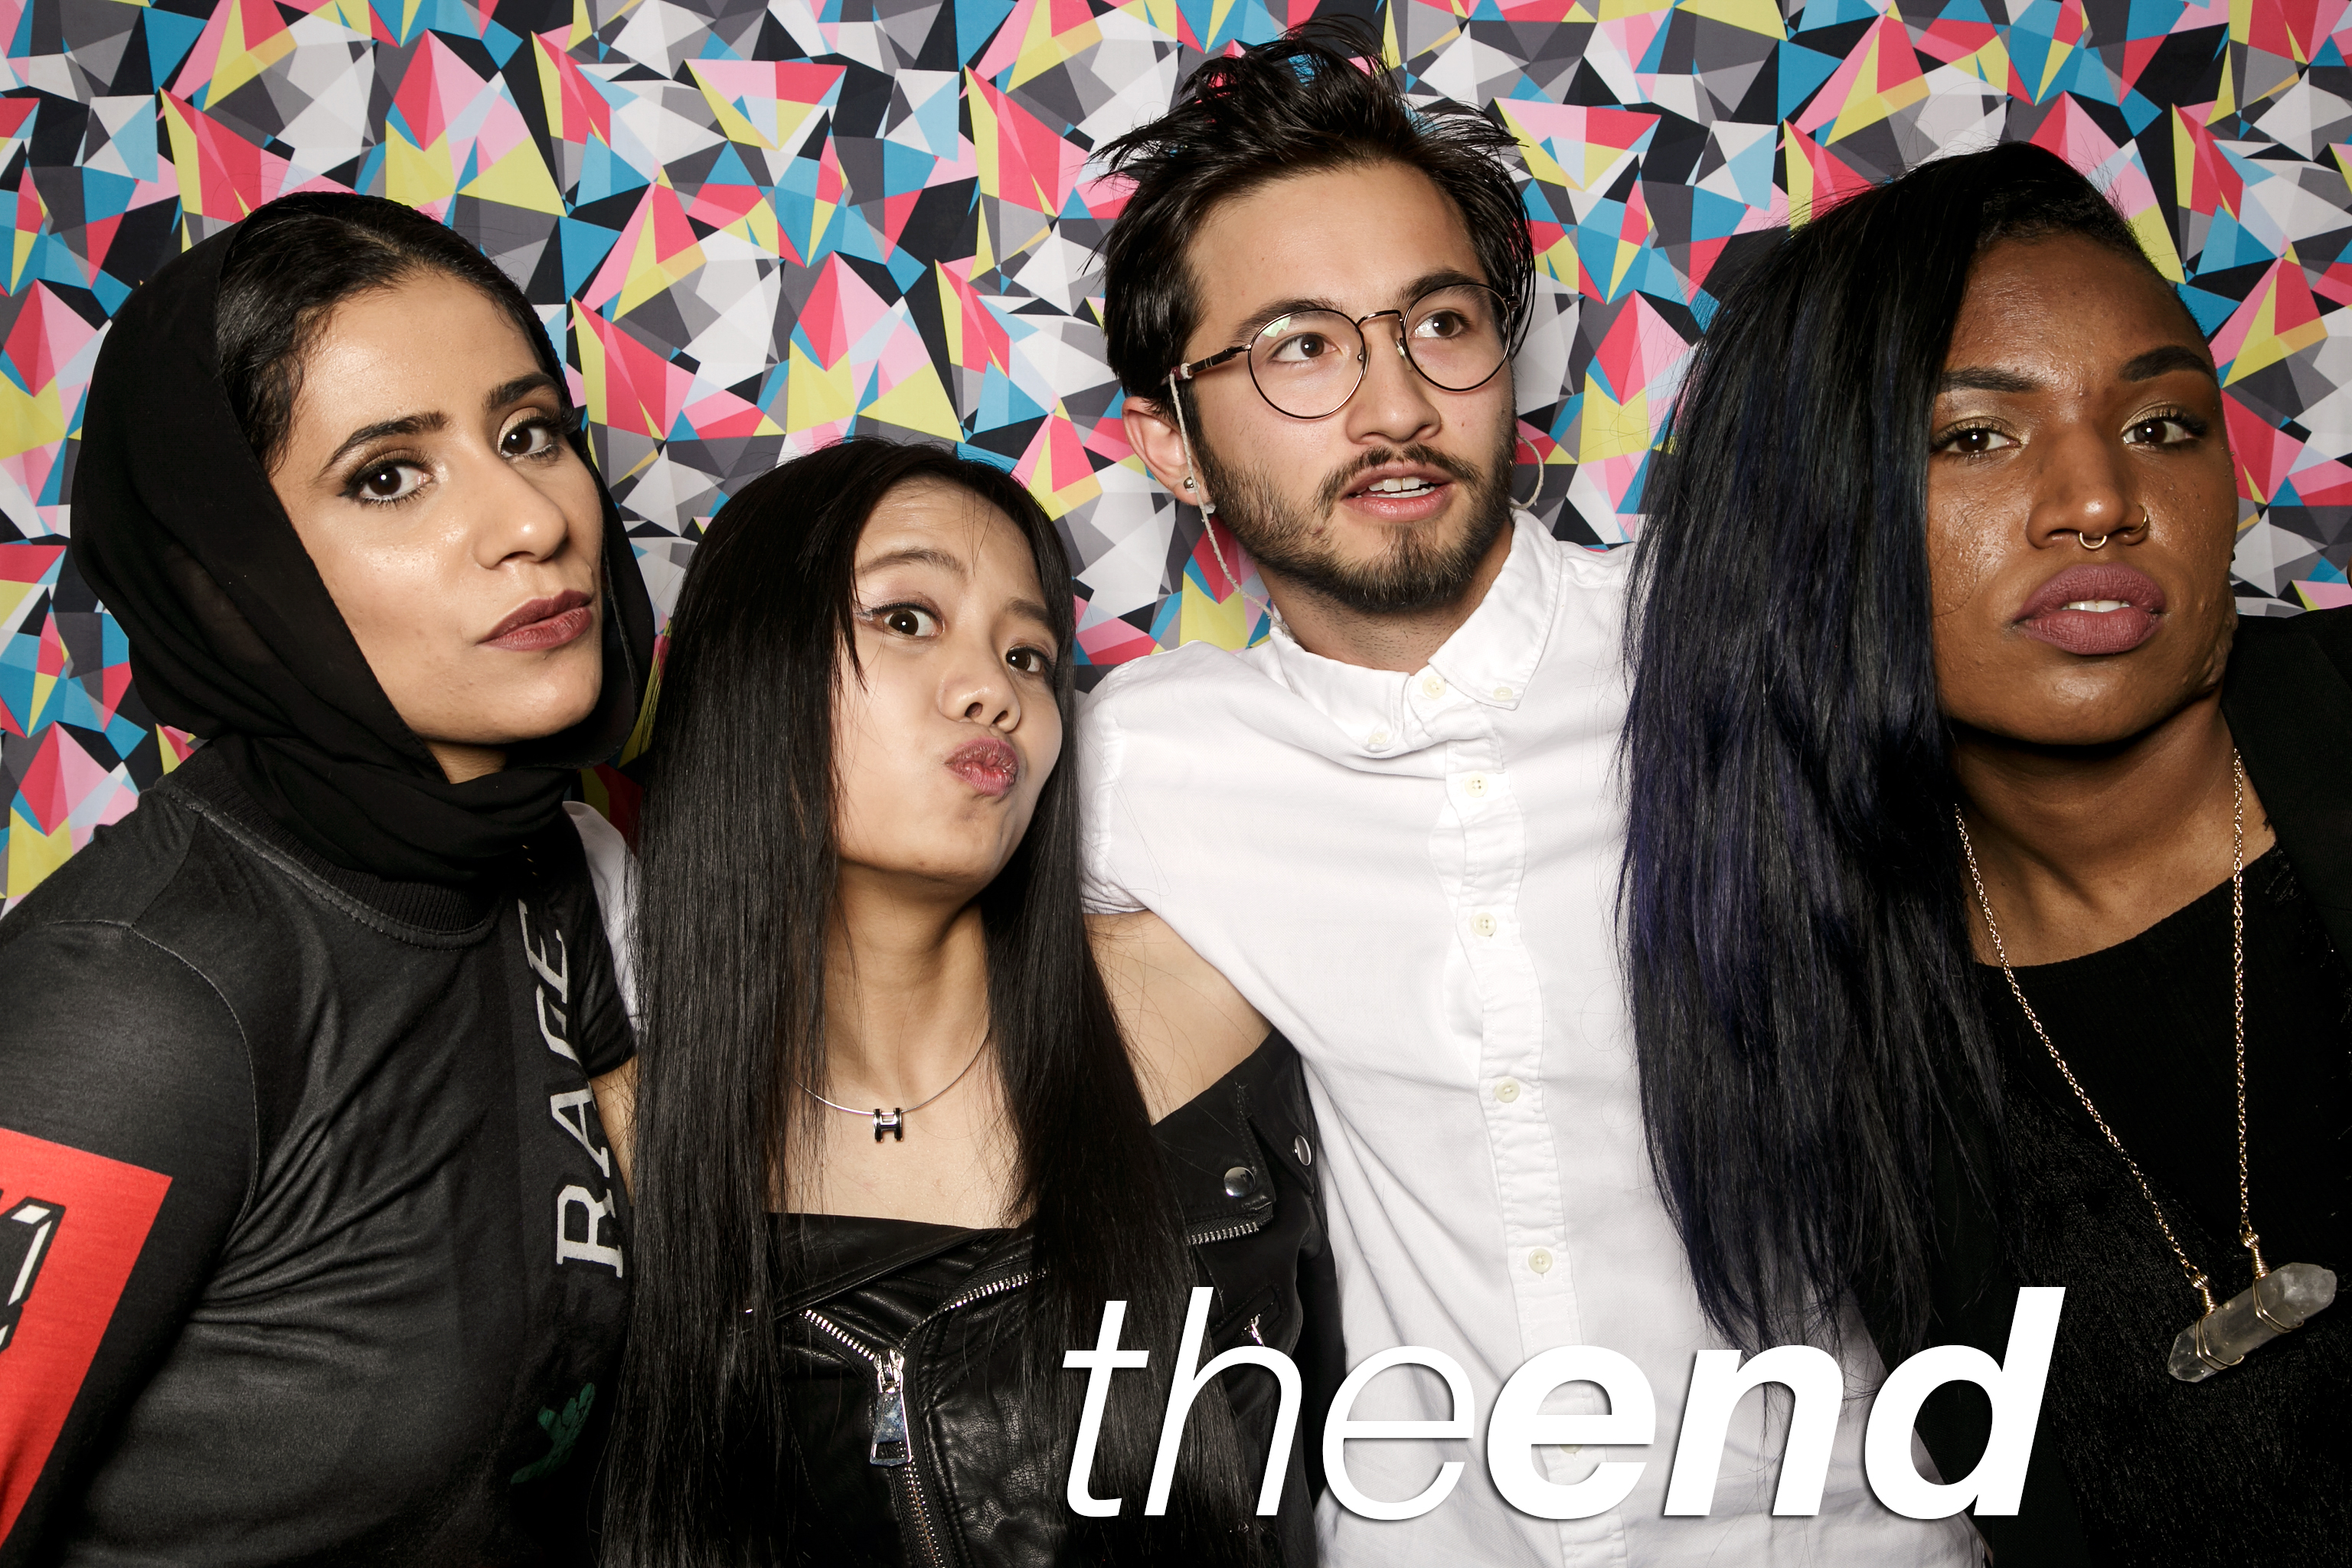 photo booth portraits from saic graduation party the end, may 2016